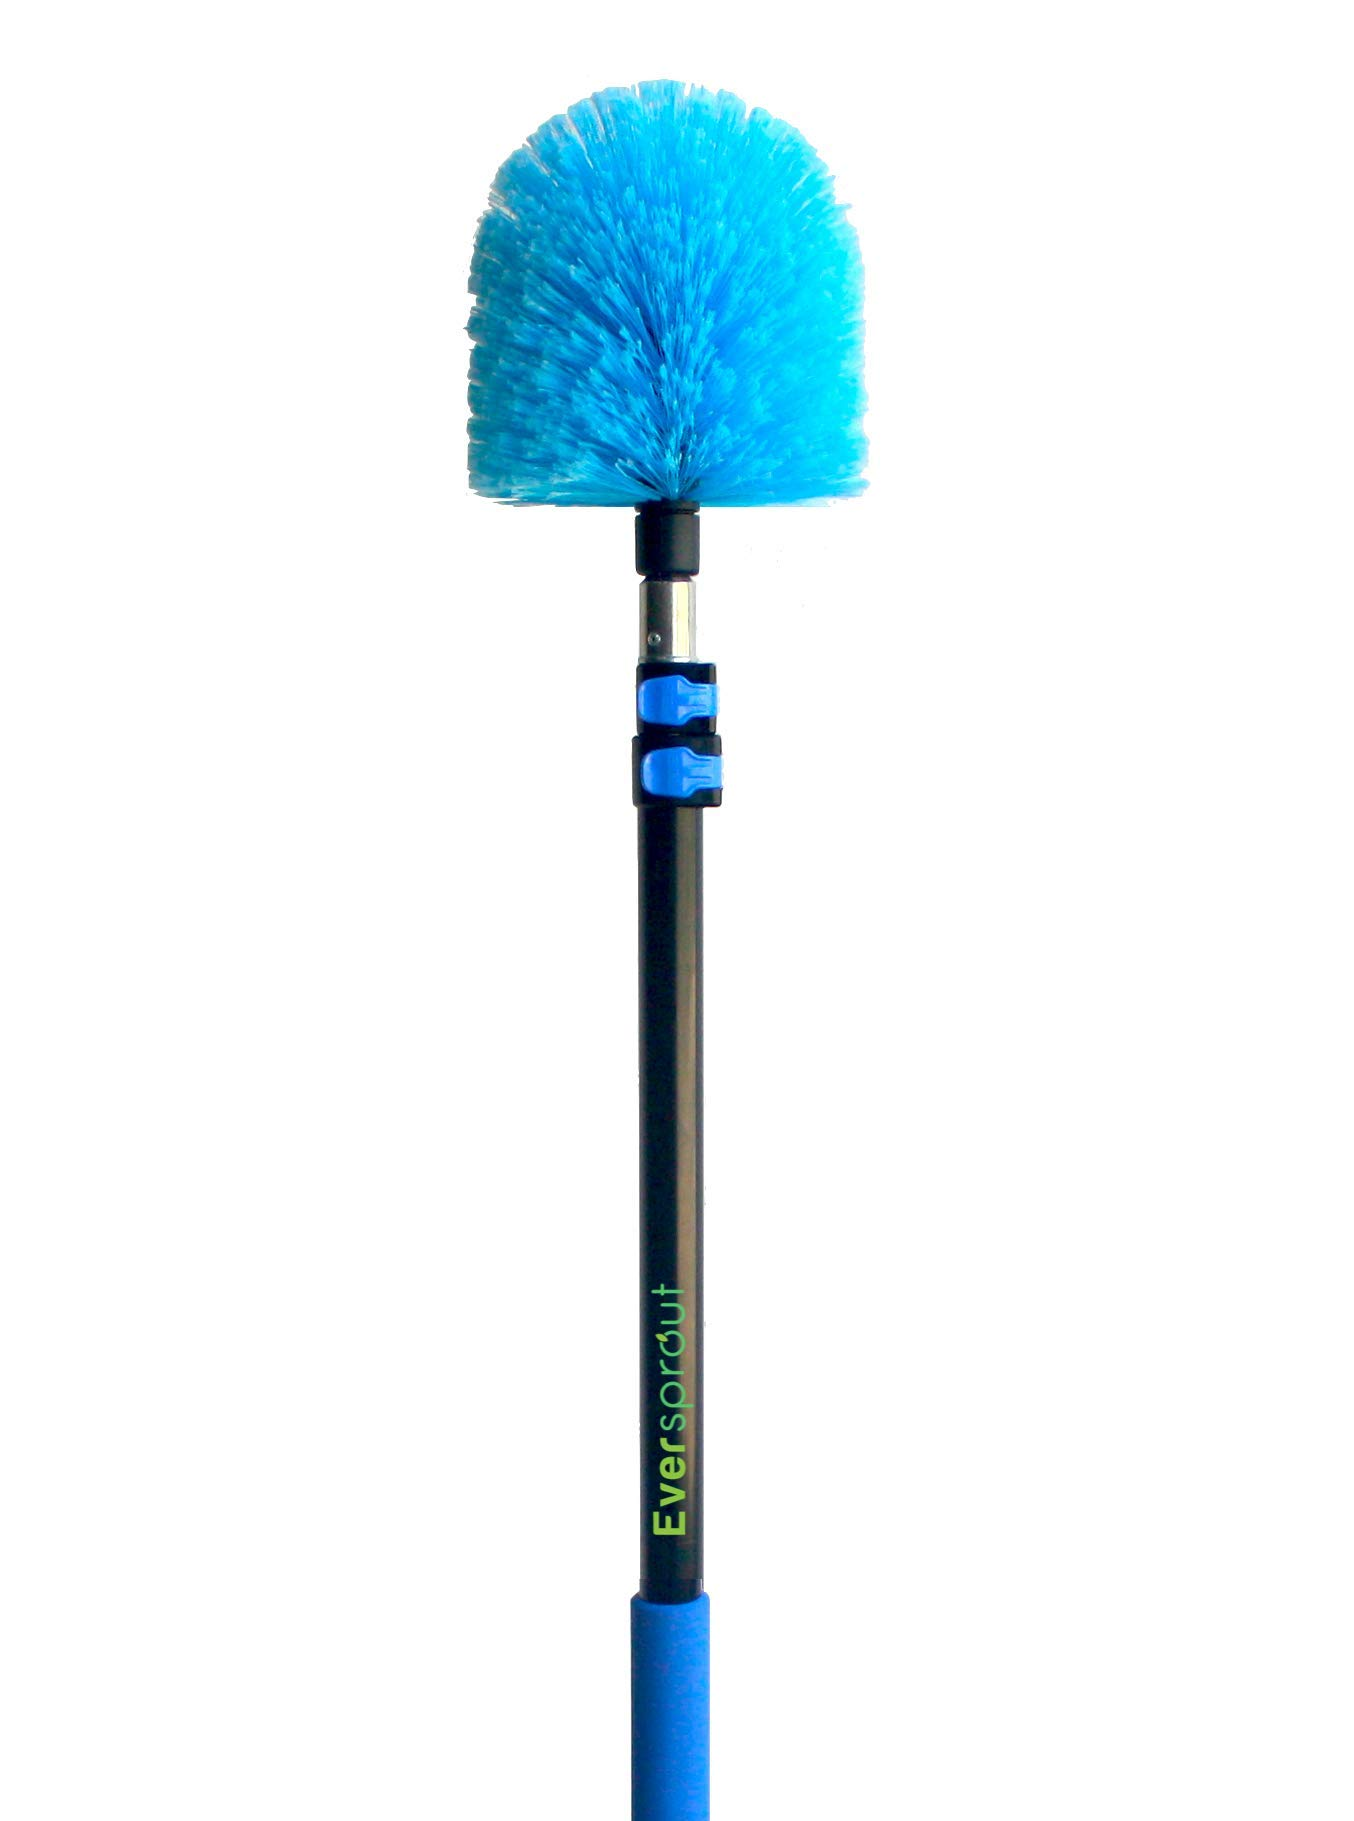 EVERSPROUT 7-to-19 Foot Cobweb Duster and Extension-Pole Combo (25 Ft. Reach, Soft Bristles) | Hand Packaged | Lightweight, 3-Stage Aluminum Pole | Indoor & Outdoor Use Brush Attachment